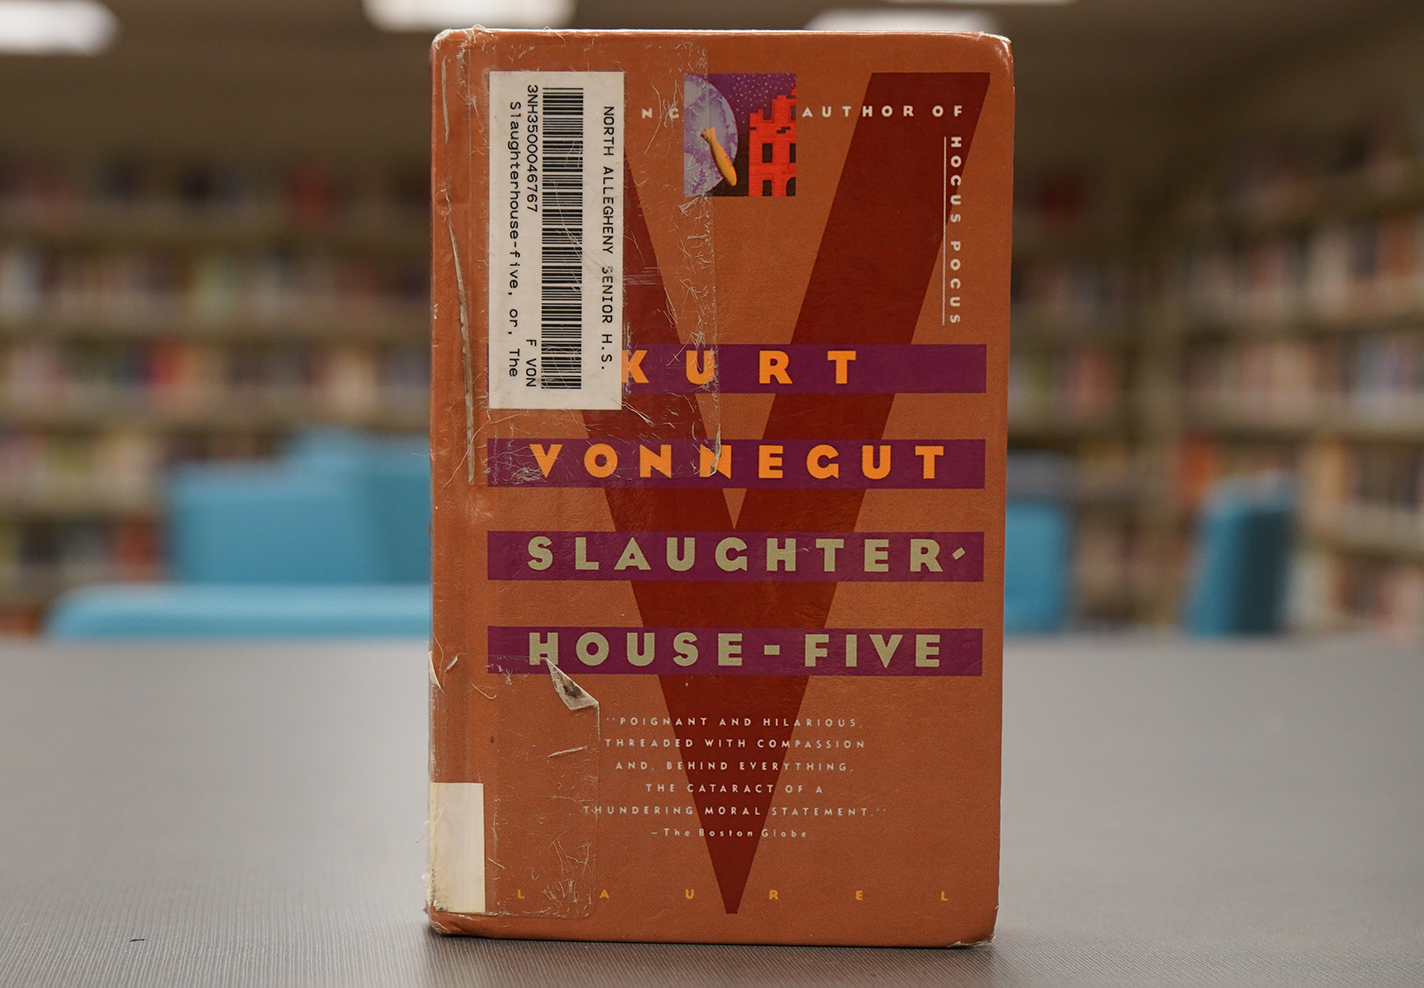 Frequently banned in school across the U.S., Slaughterhouse-Five nevertheless contains some of the humanizing themes in all of American literature.